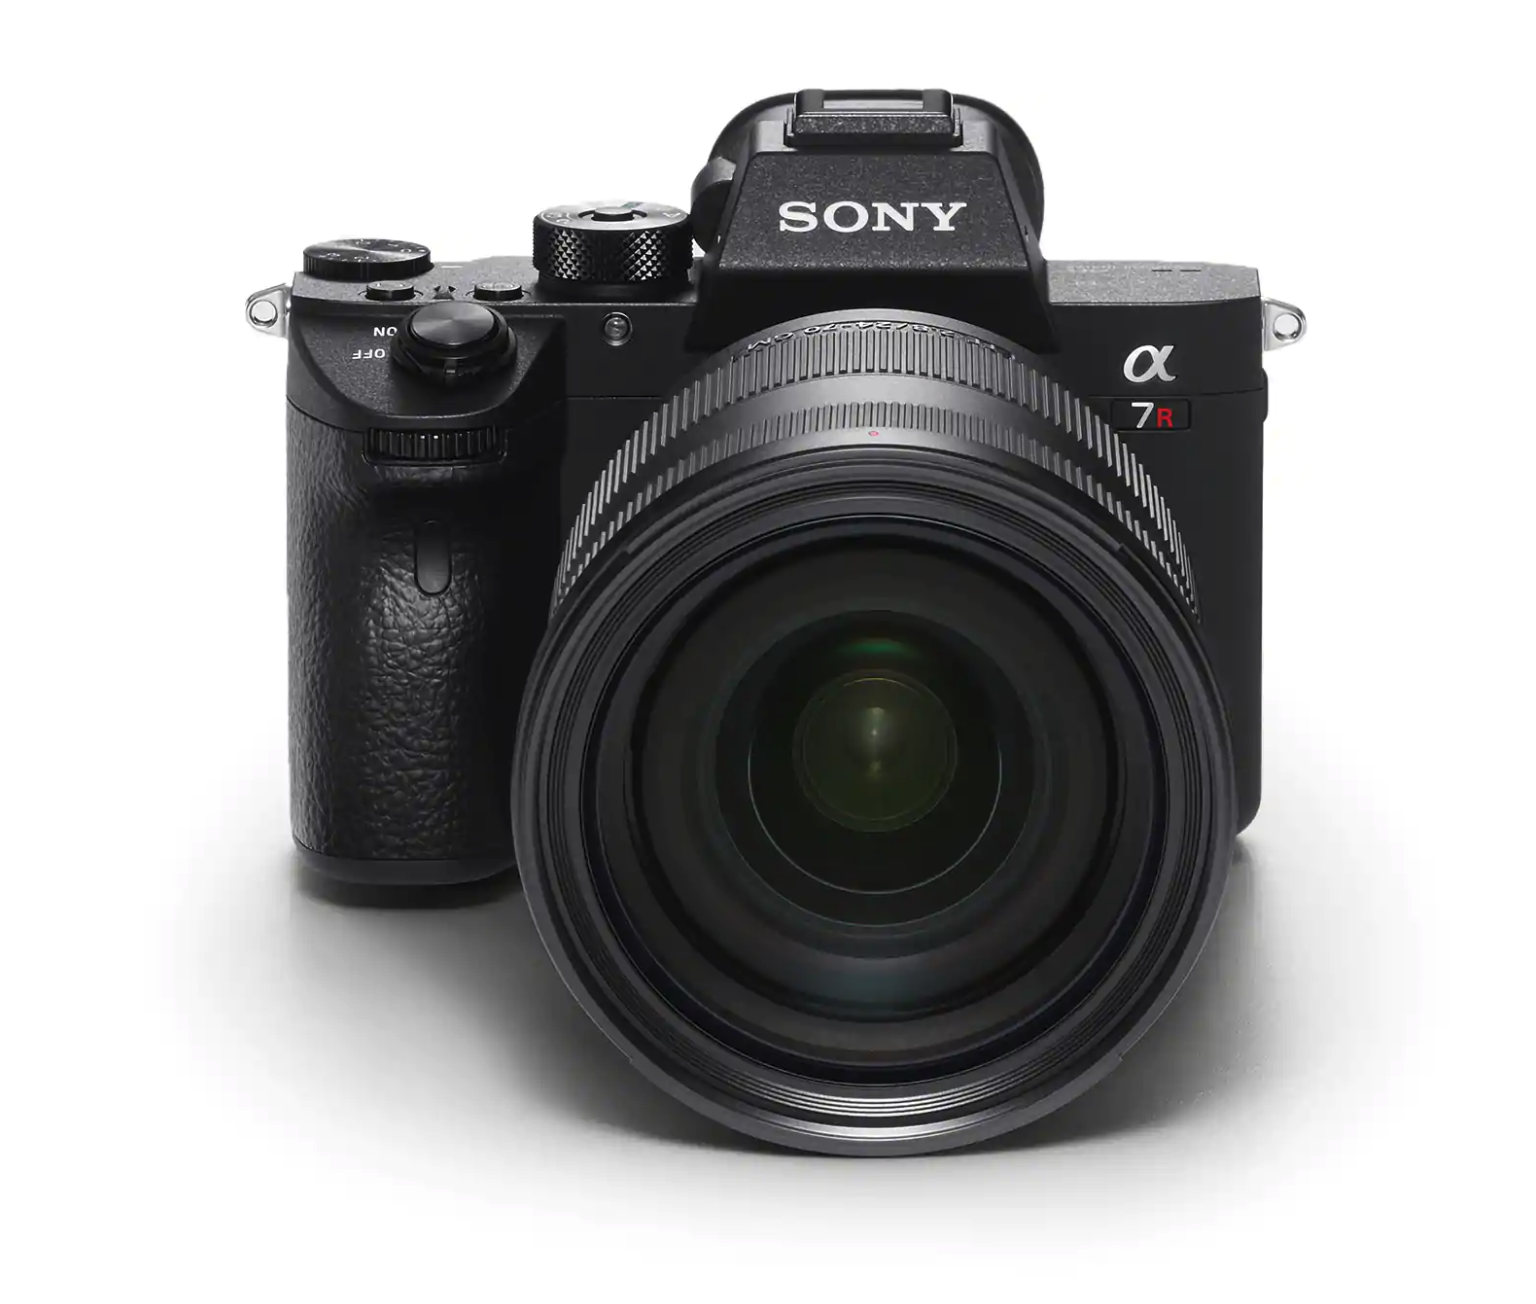 Sony A7Riii - I use the Sony A7Riii to get my pics, its an amazing camera. crazy good iso and the eye tracking is off the charts. I moved over from years of using Canon and never looked back.